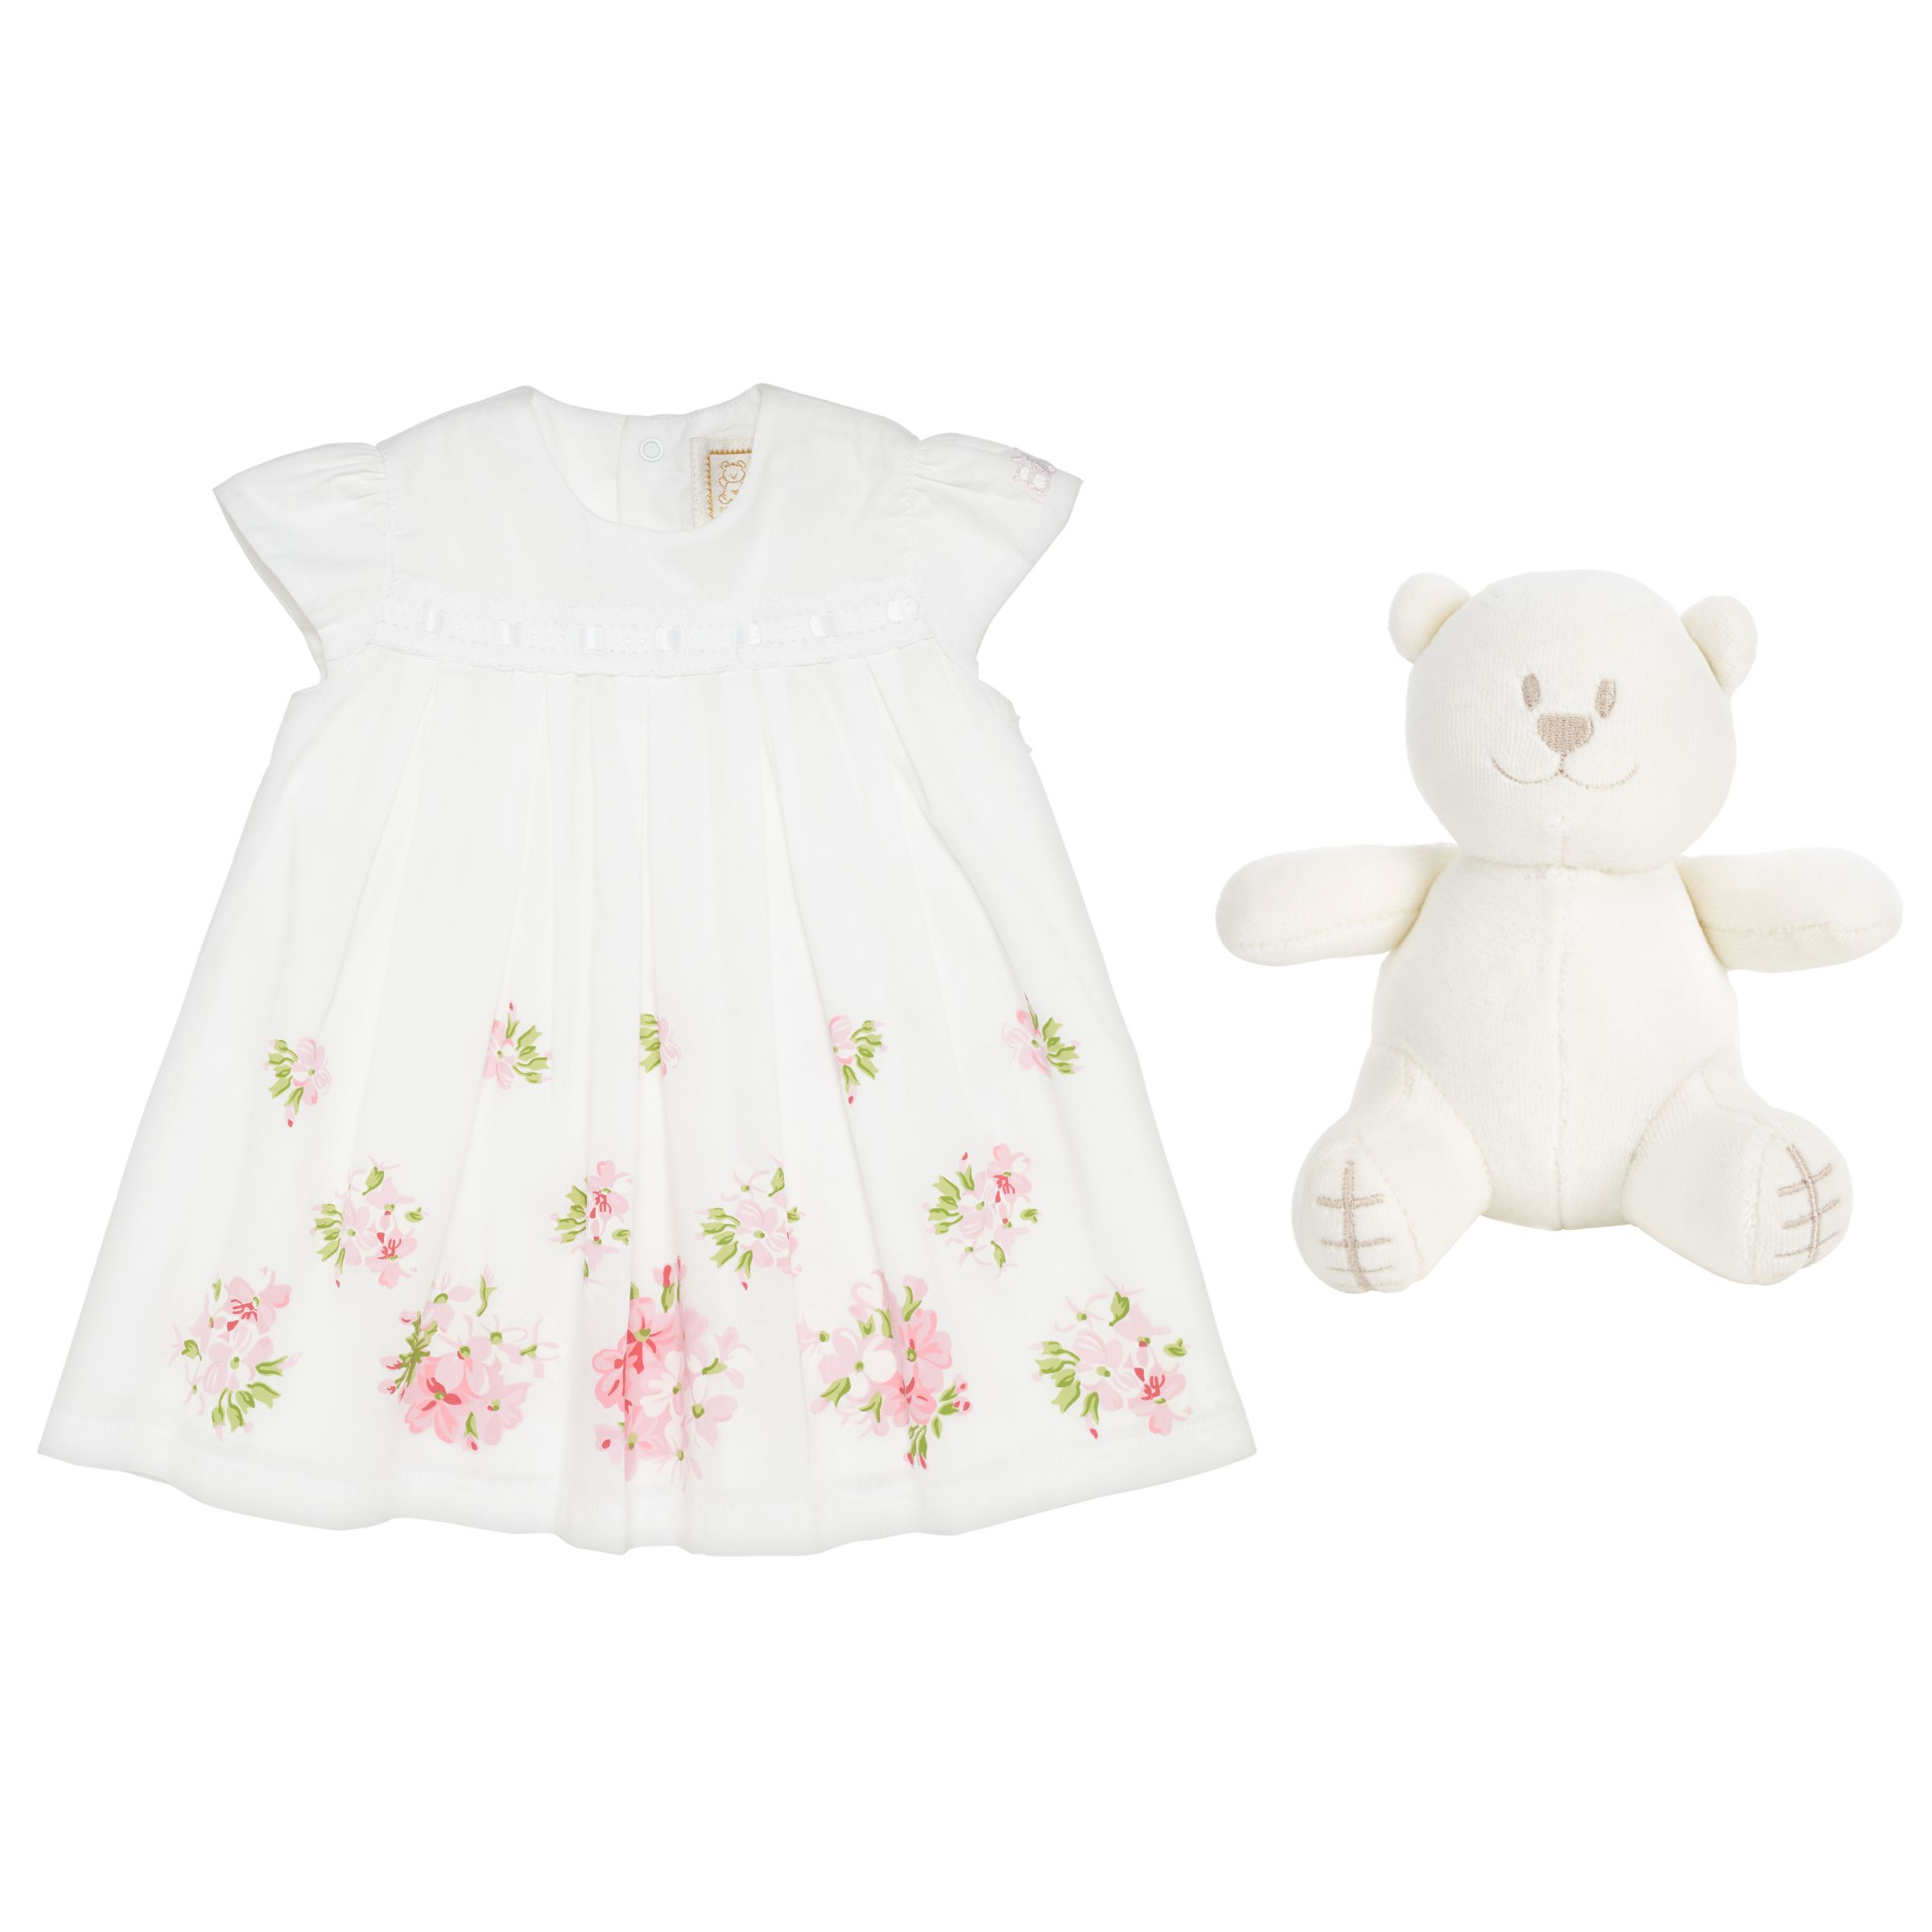 Emile et Rose Emile et Rose Baby Krystal Flower Dress, White/Pink